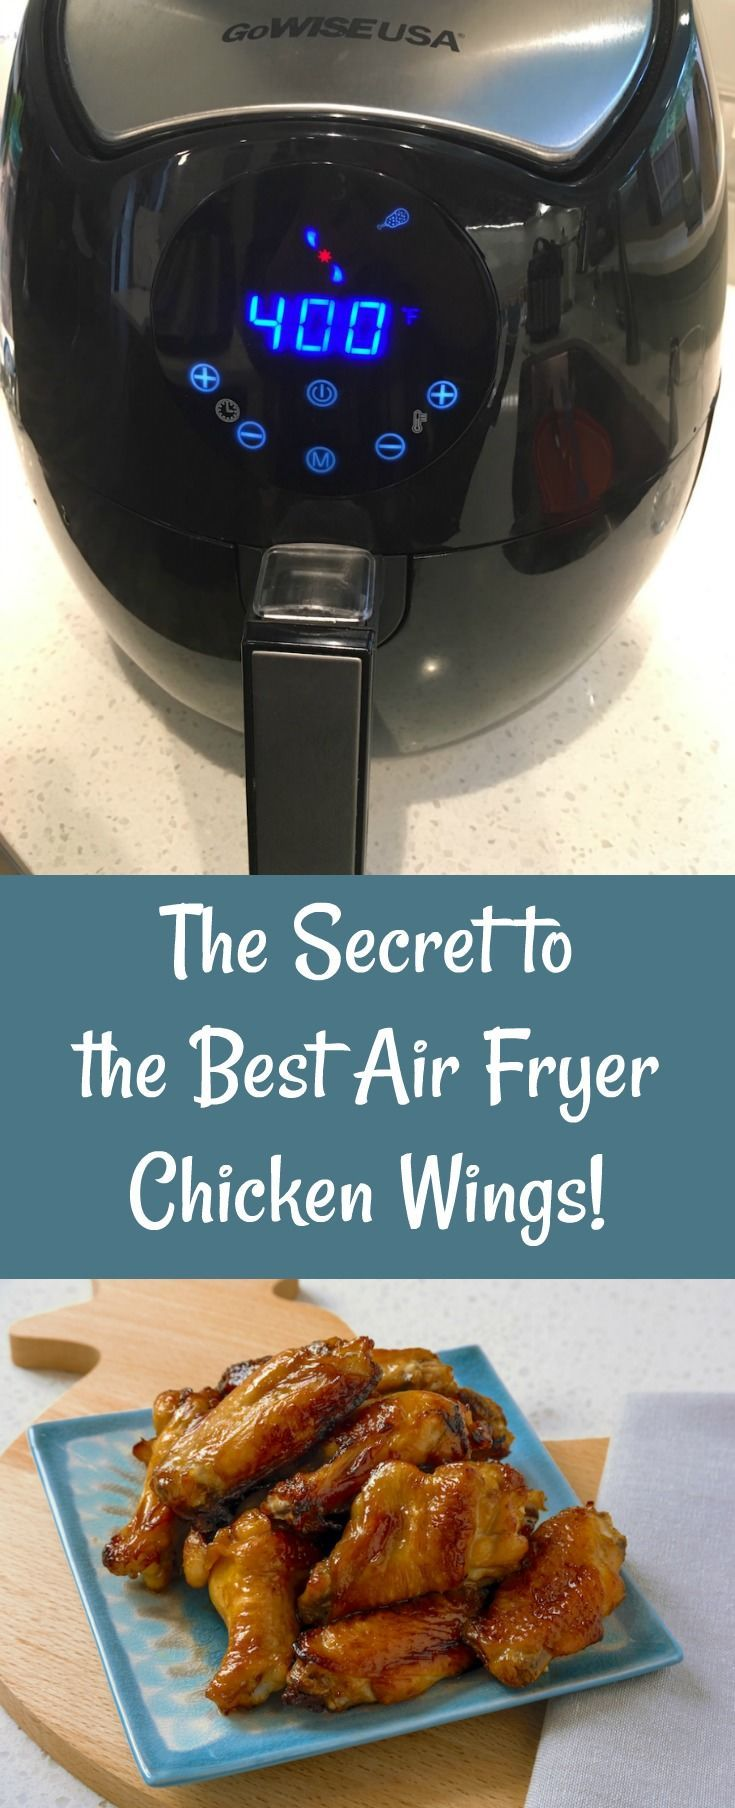 Want to know the secret to great Air Fryer chicken wings? I've got the easy recipe right here - with two variations (Asian and Mexican) for marinading sauces. So crispy and much more healthy than traditional wings! via @diy_candy